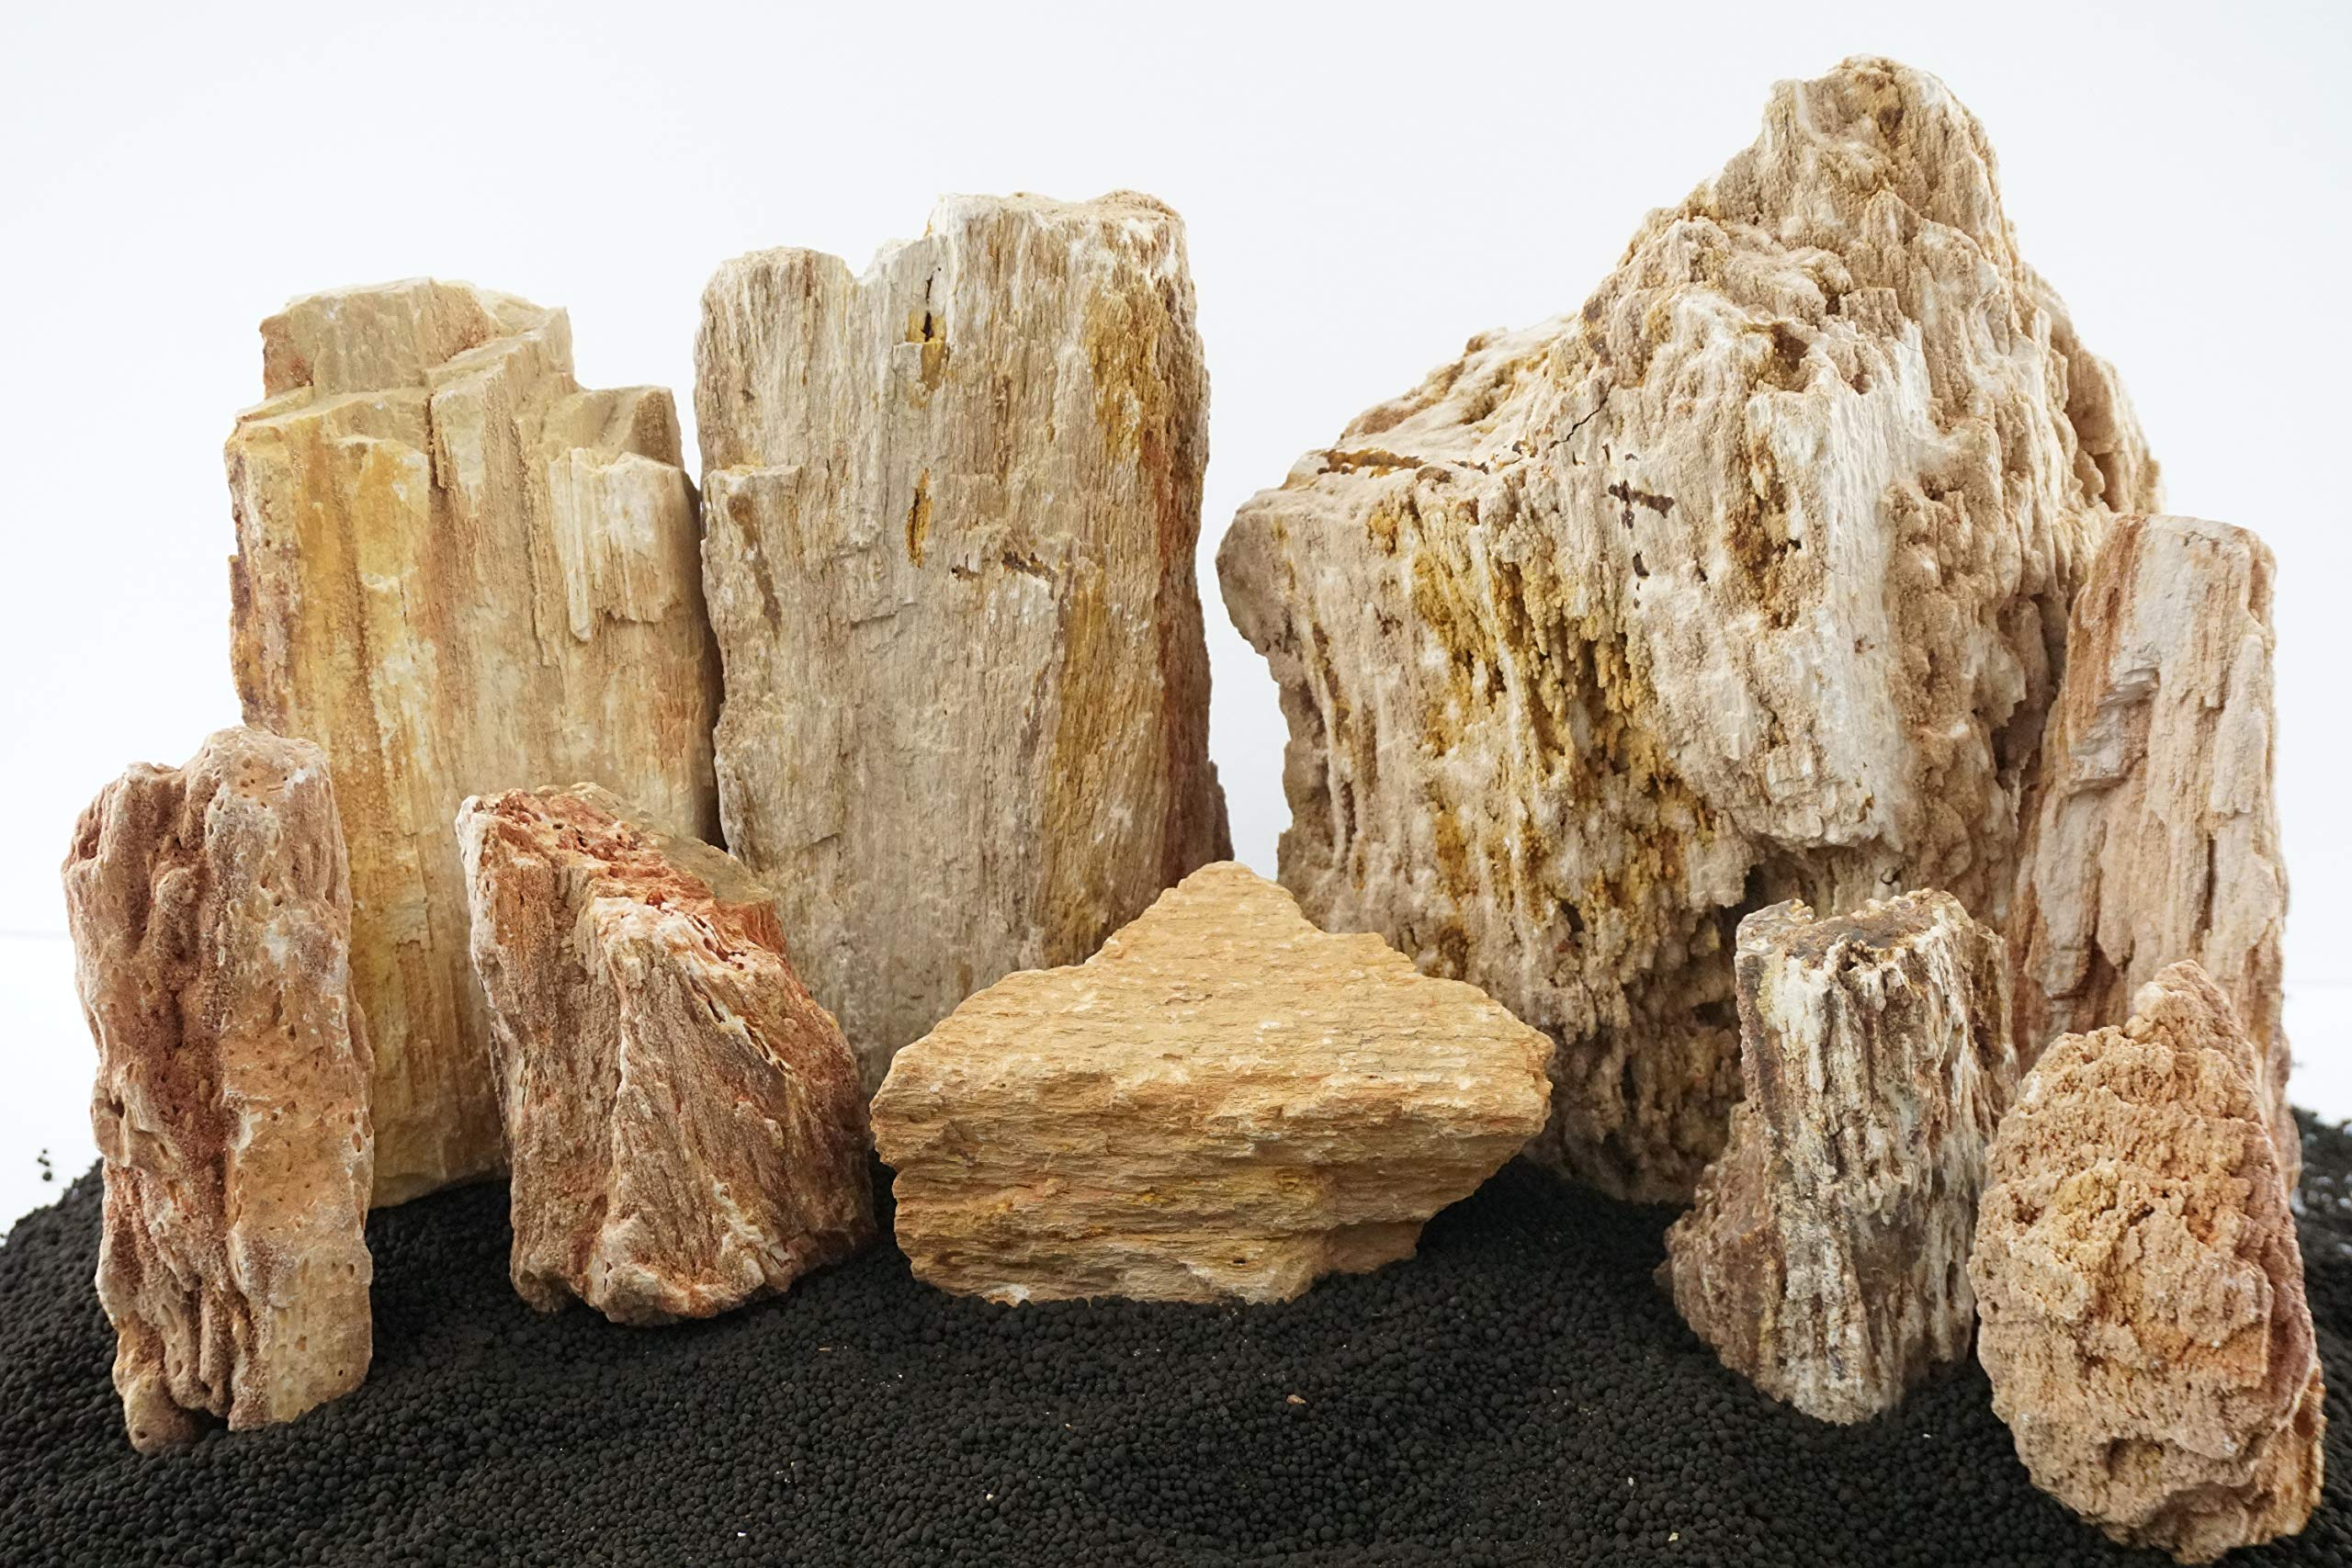 Lifegard Aquatics - Burma Petrified Stone 25 Gallon Aquarium Rock Kit by Lifegard Aquatics